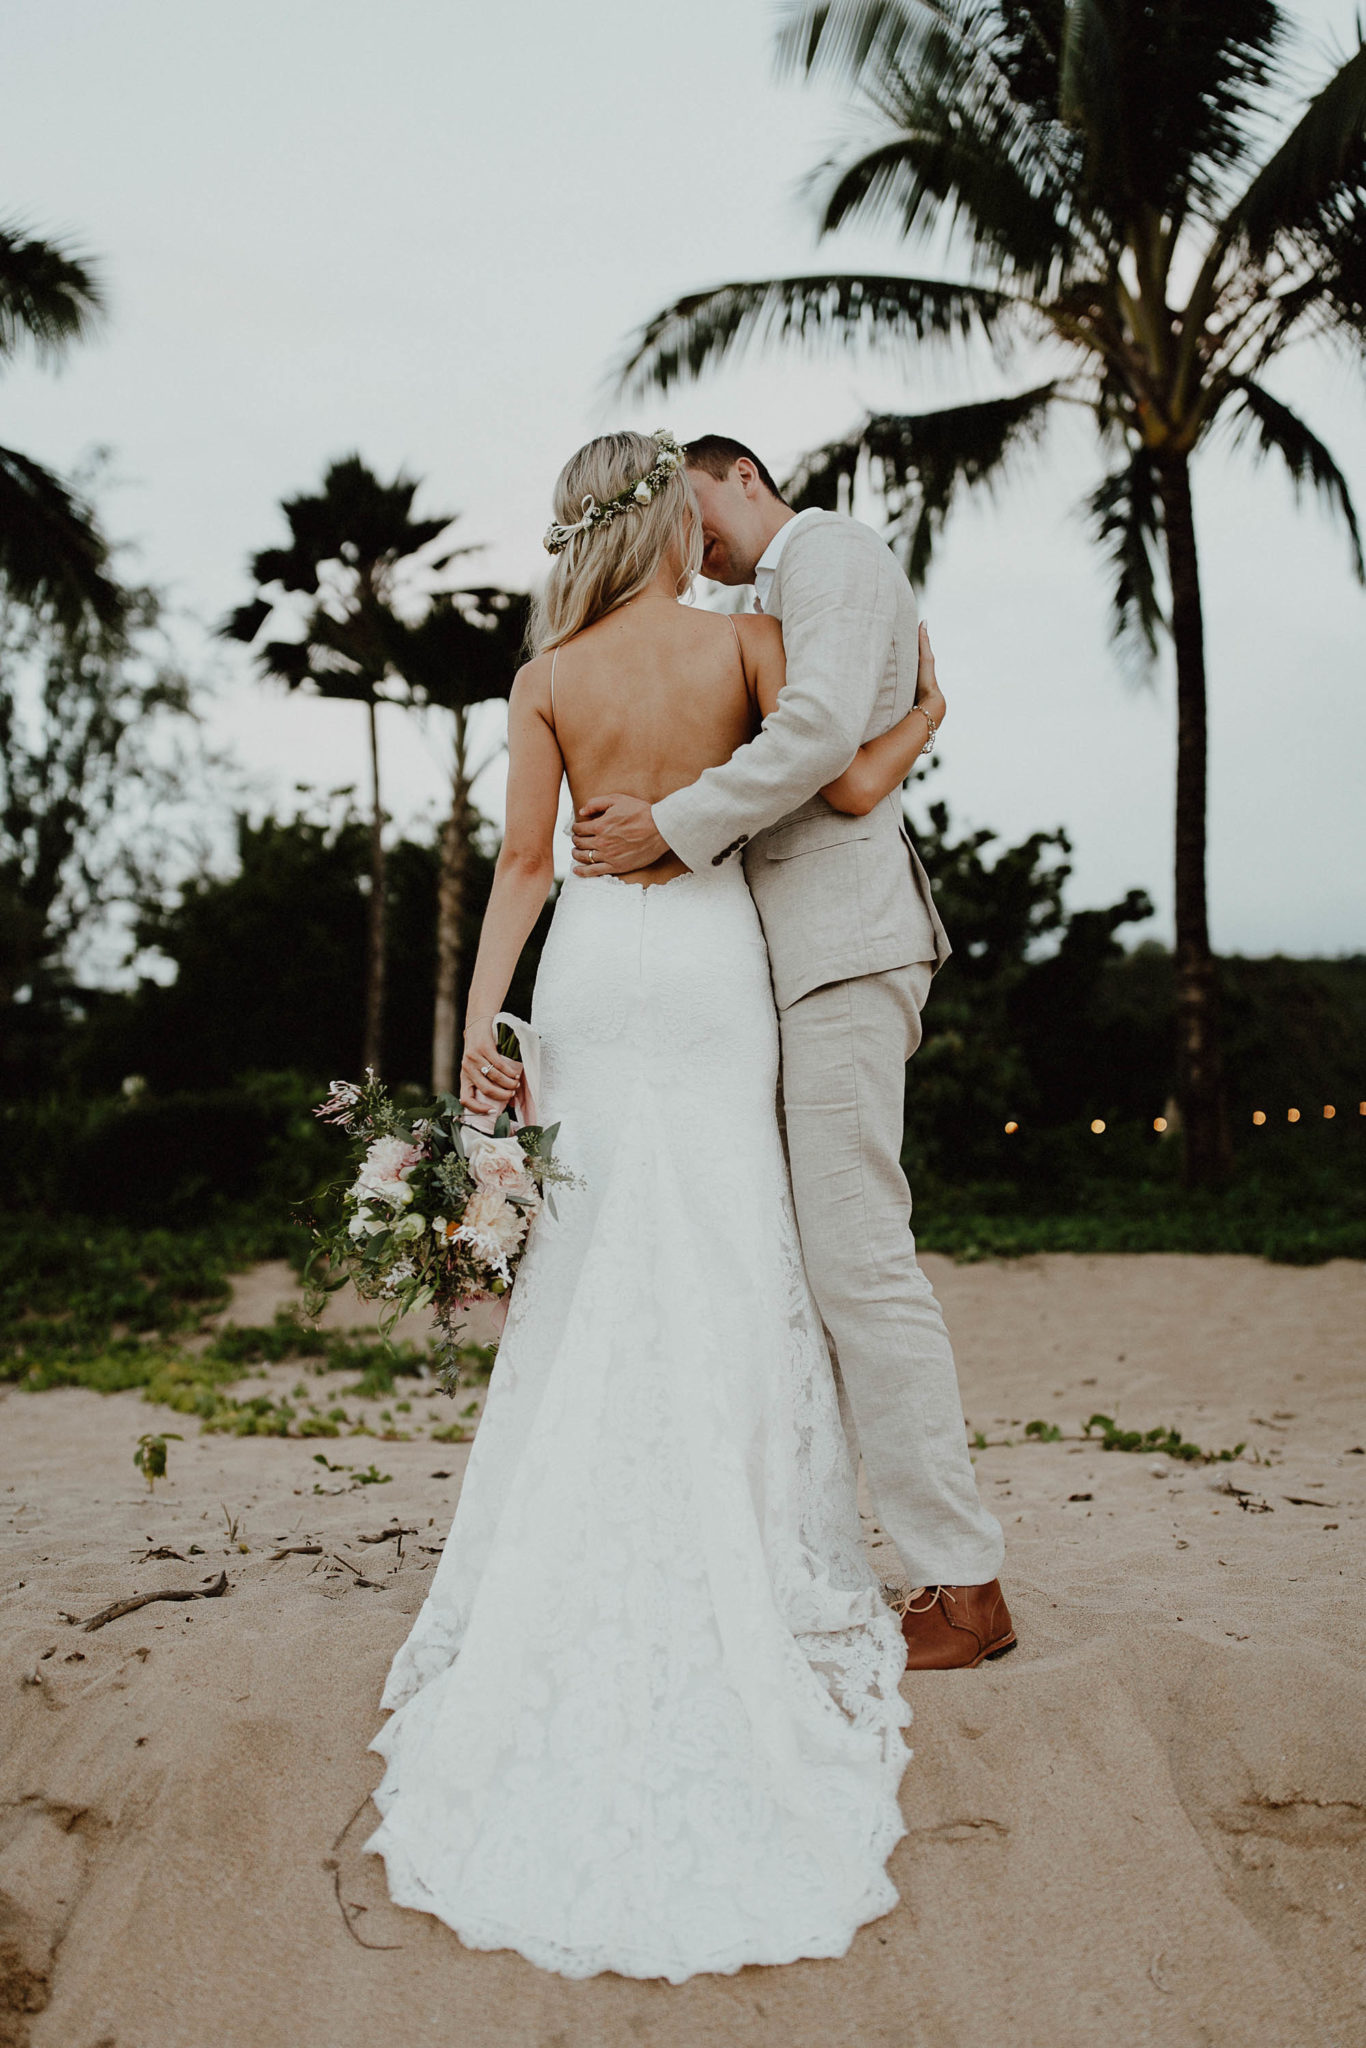 Couple photos backless wedding dress on hanalei bay beach north shore kauai hawaii